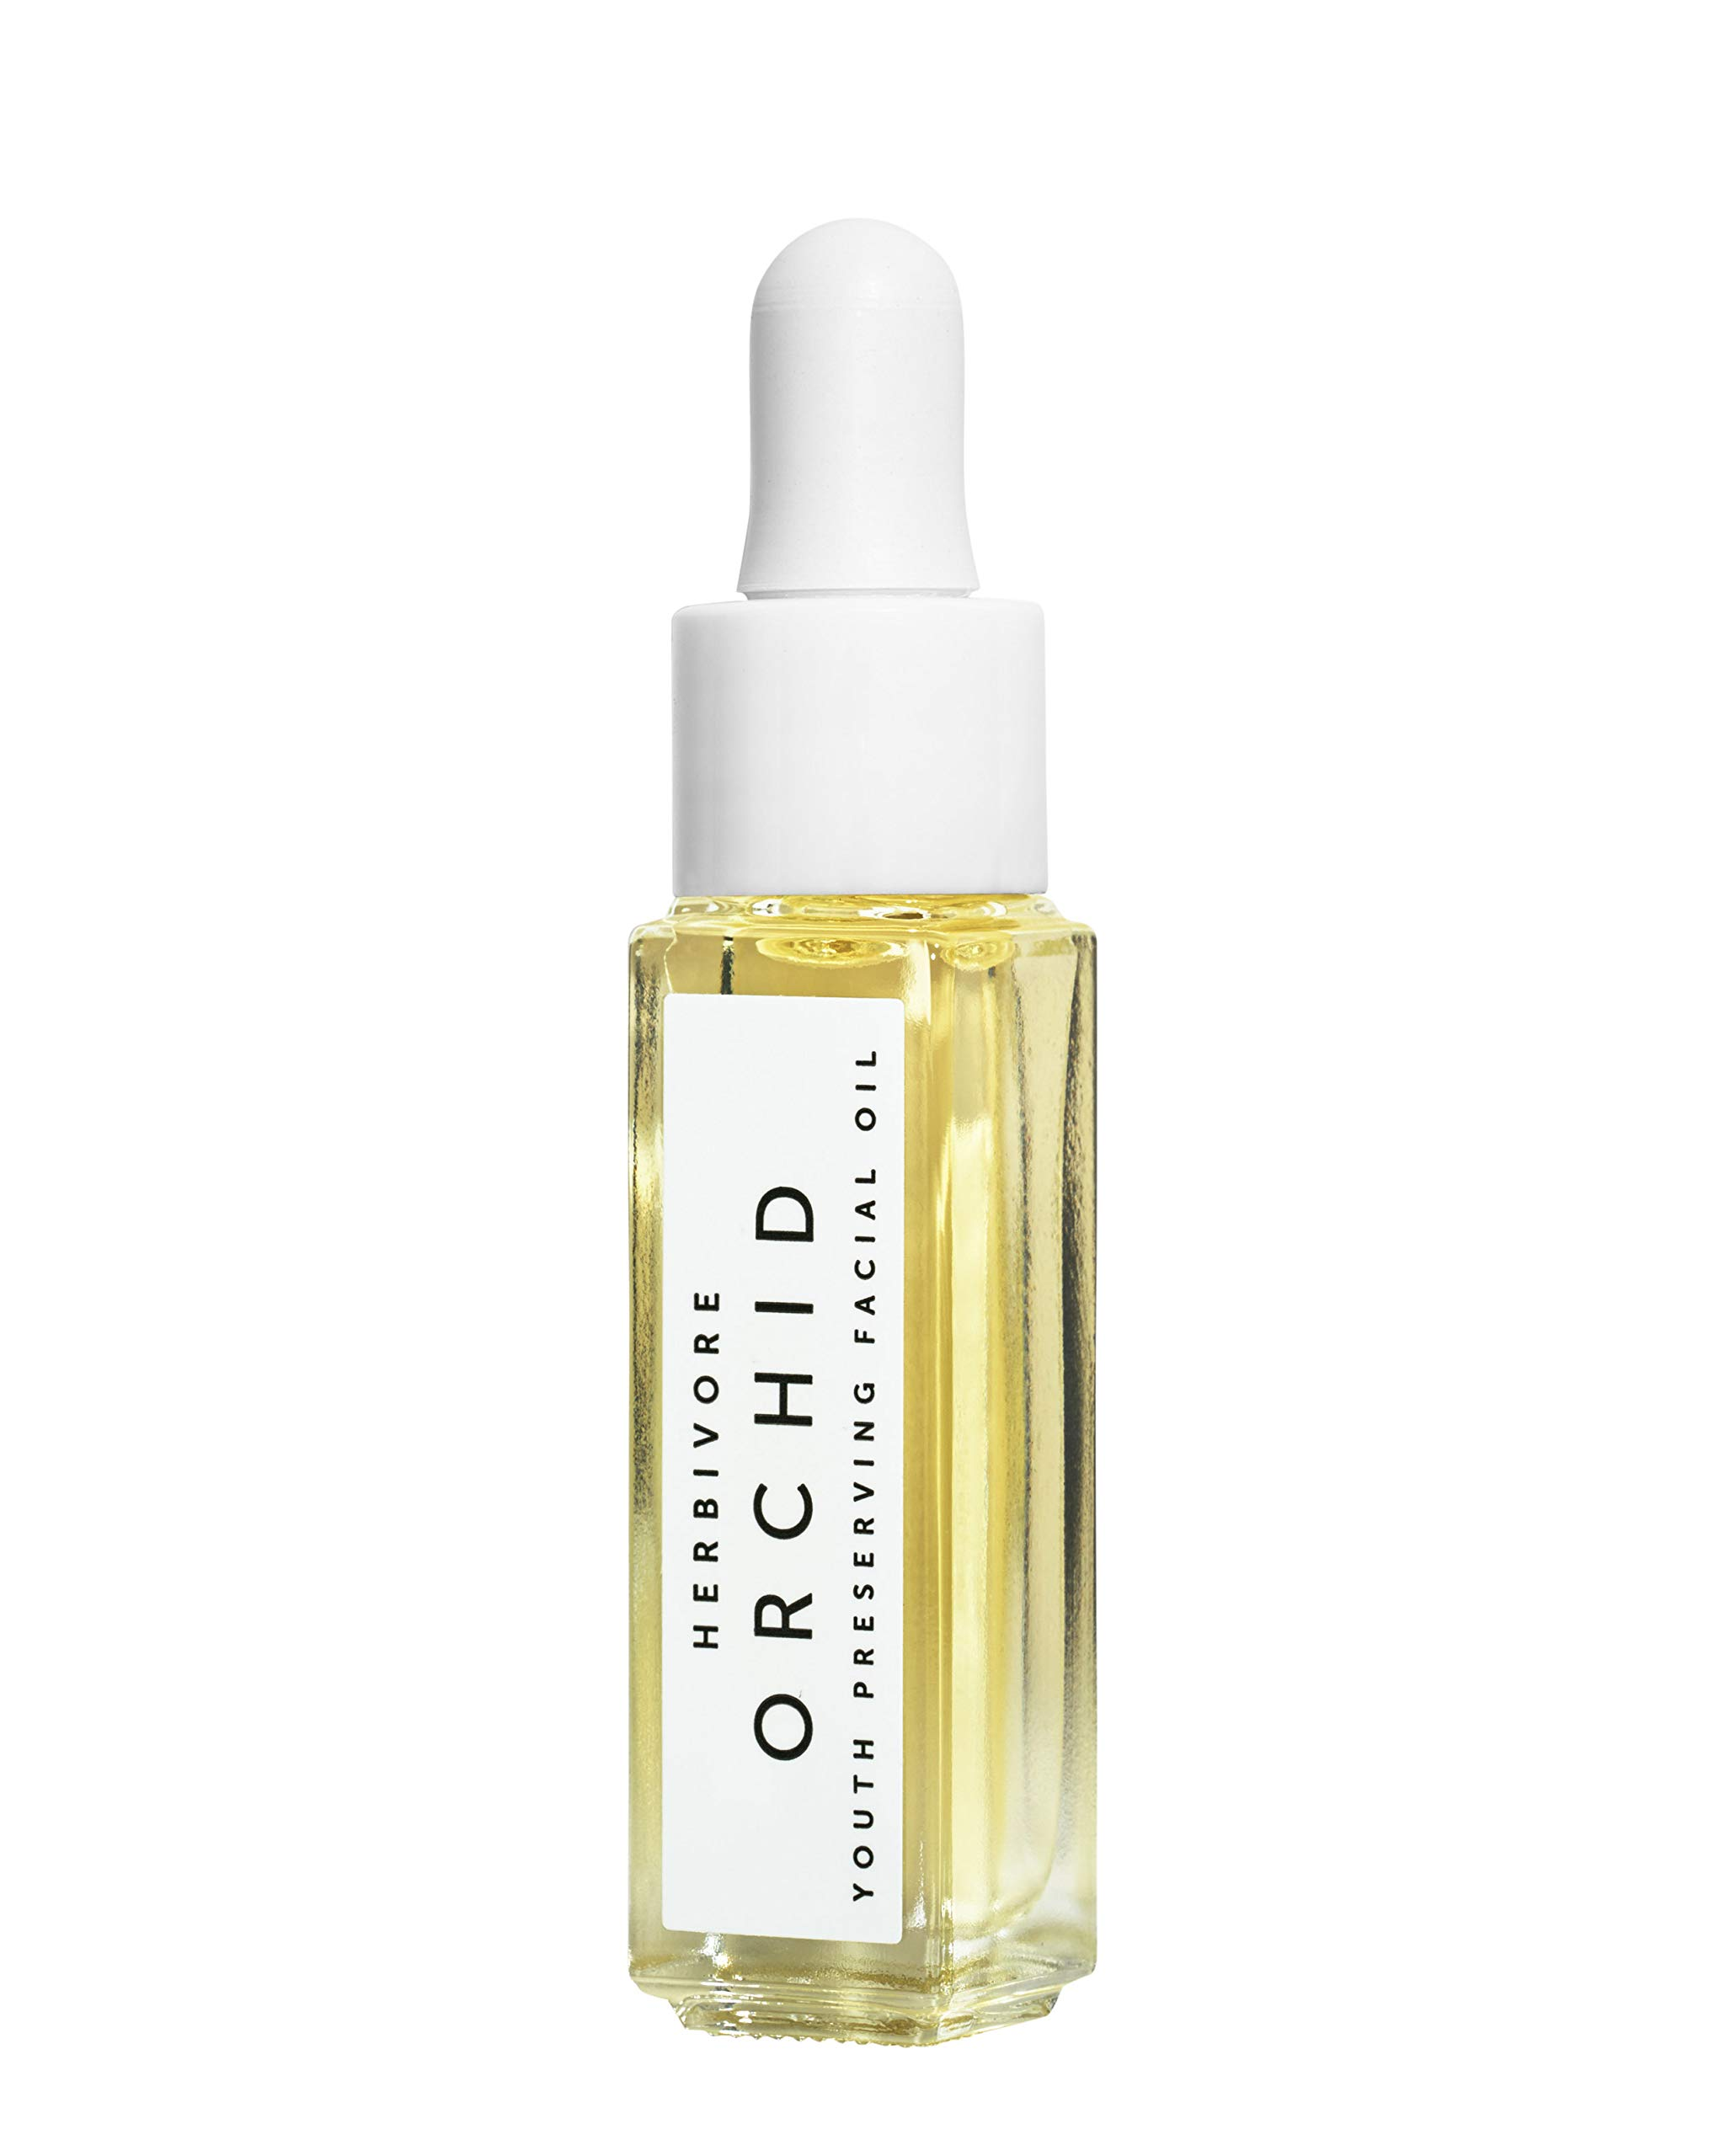 Orchid Facial Oil Roller